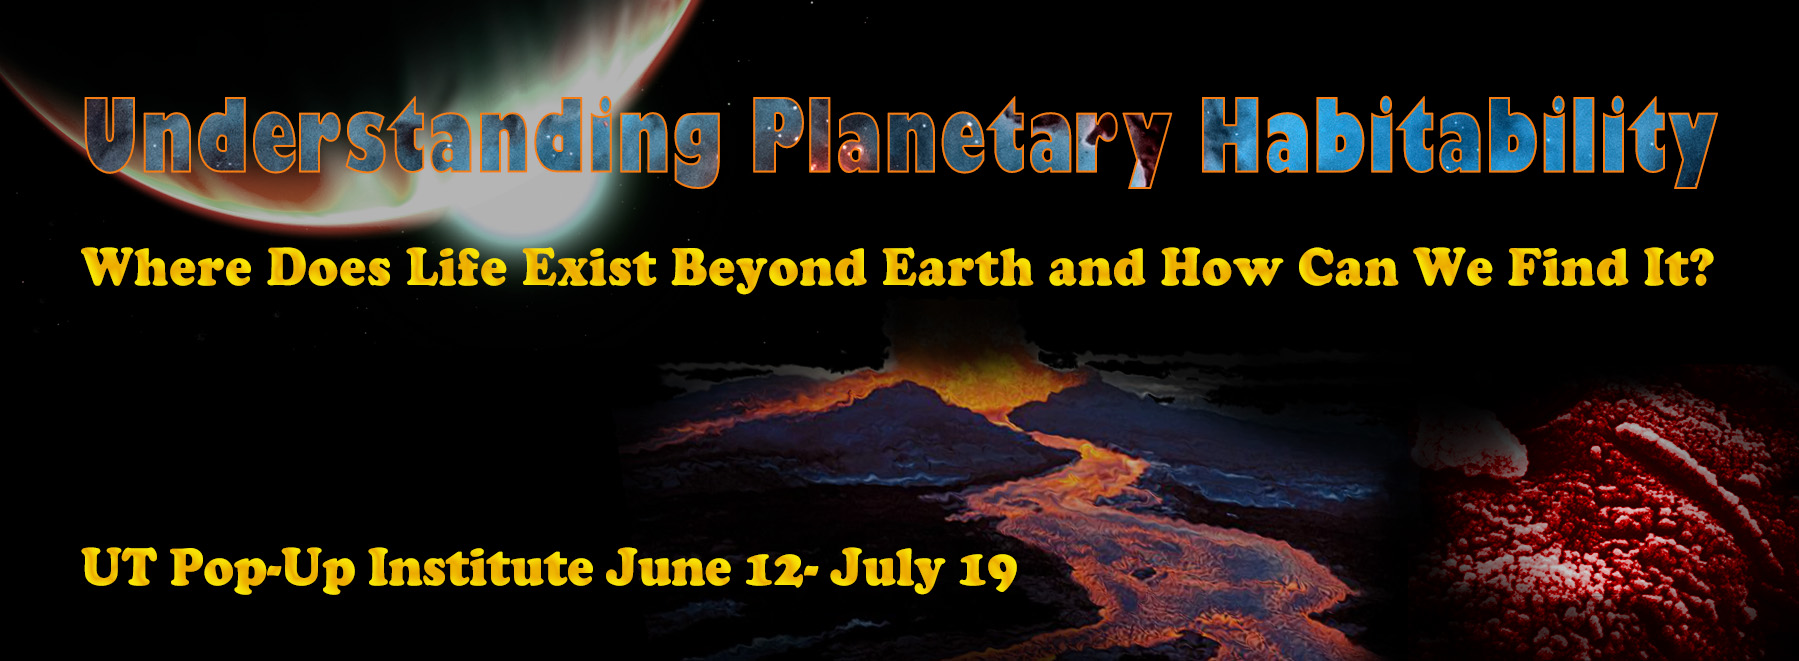 Understanding Planetary Habitability: Where does life exist behond Earth and how can we find it?